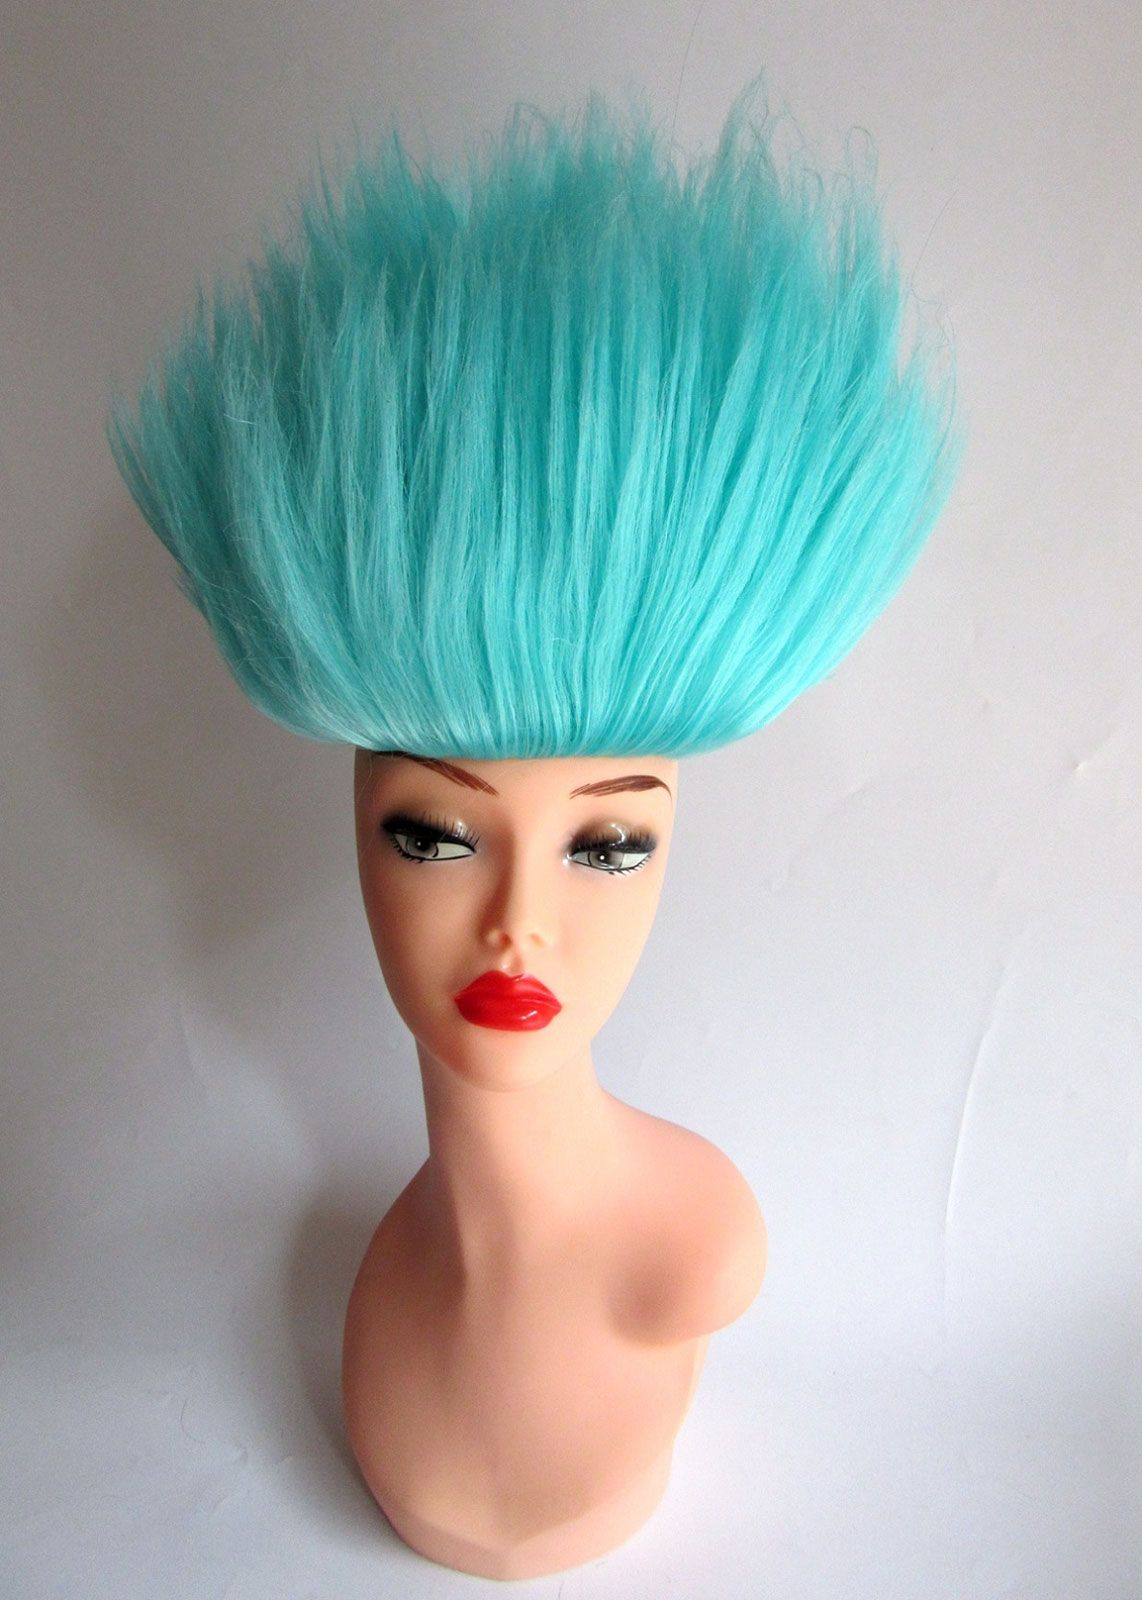 Light Blue Troll Doll Costume Wig Spiky Halloween Hair Hairpiece Dressup Fun Film Movie Danish